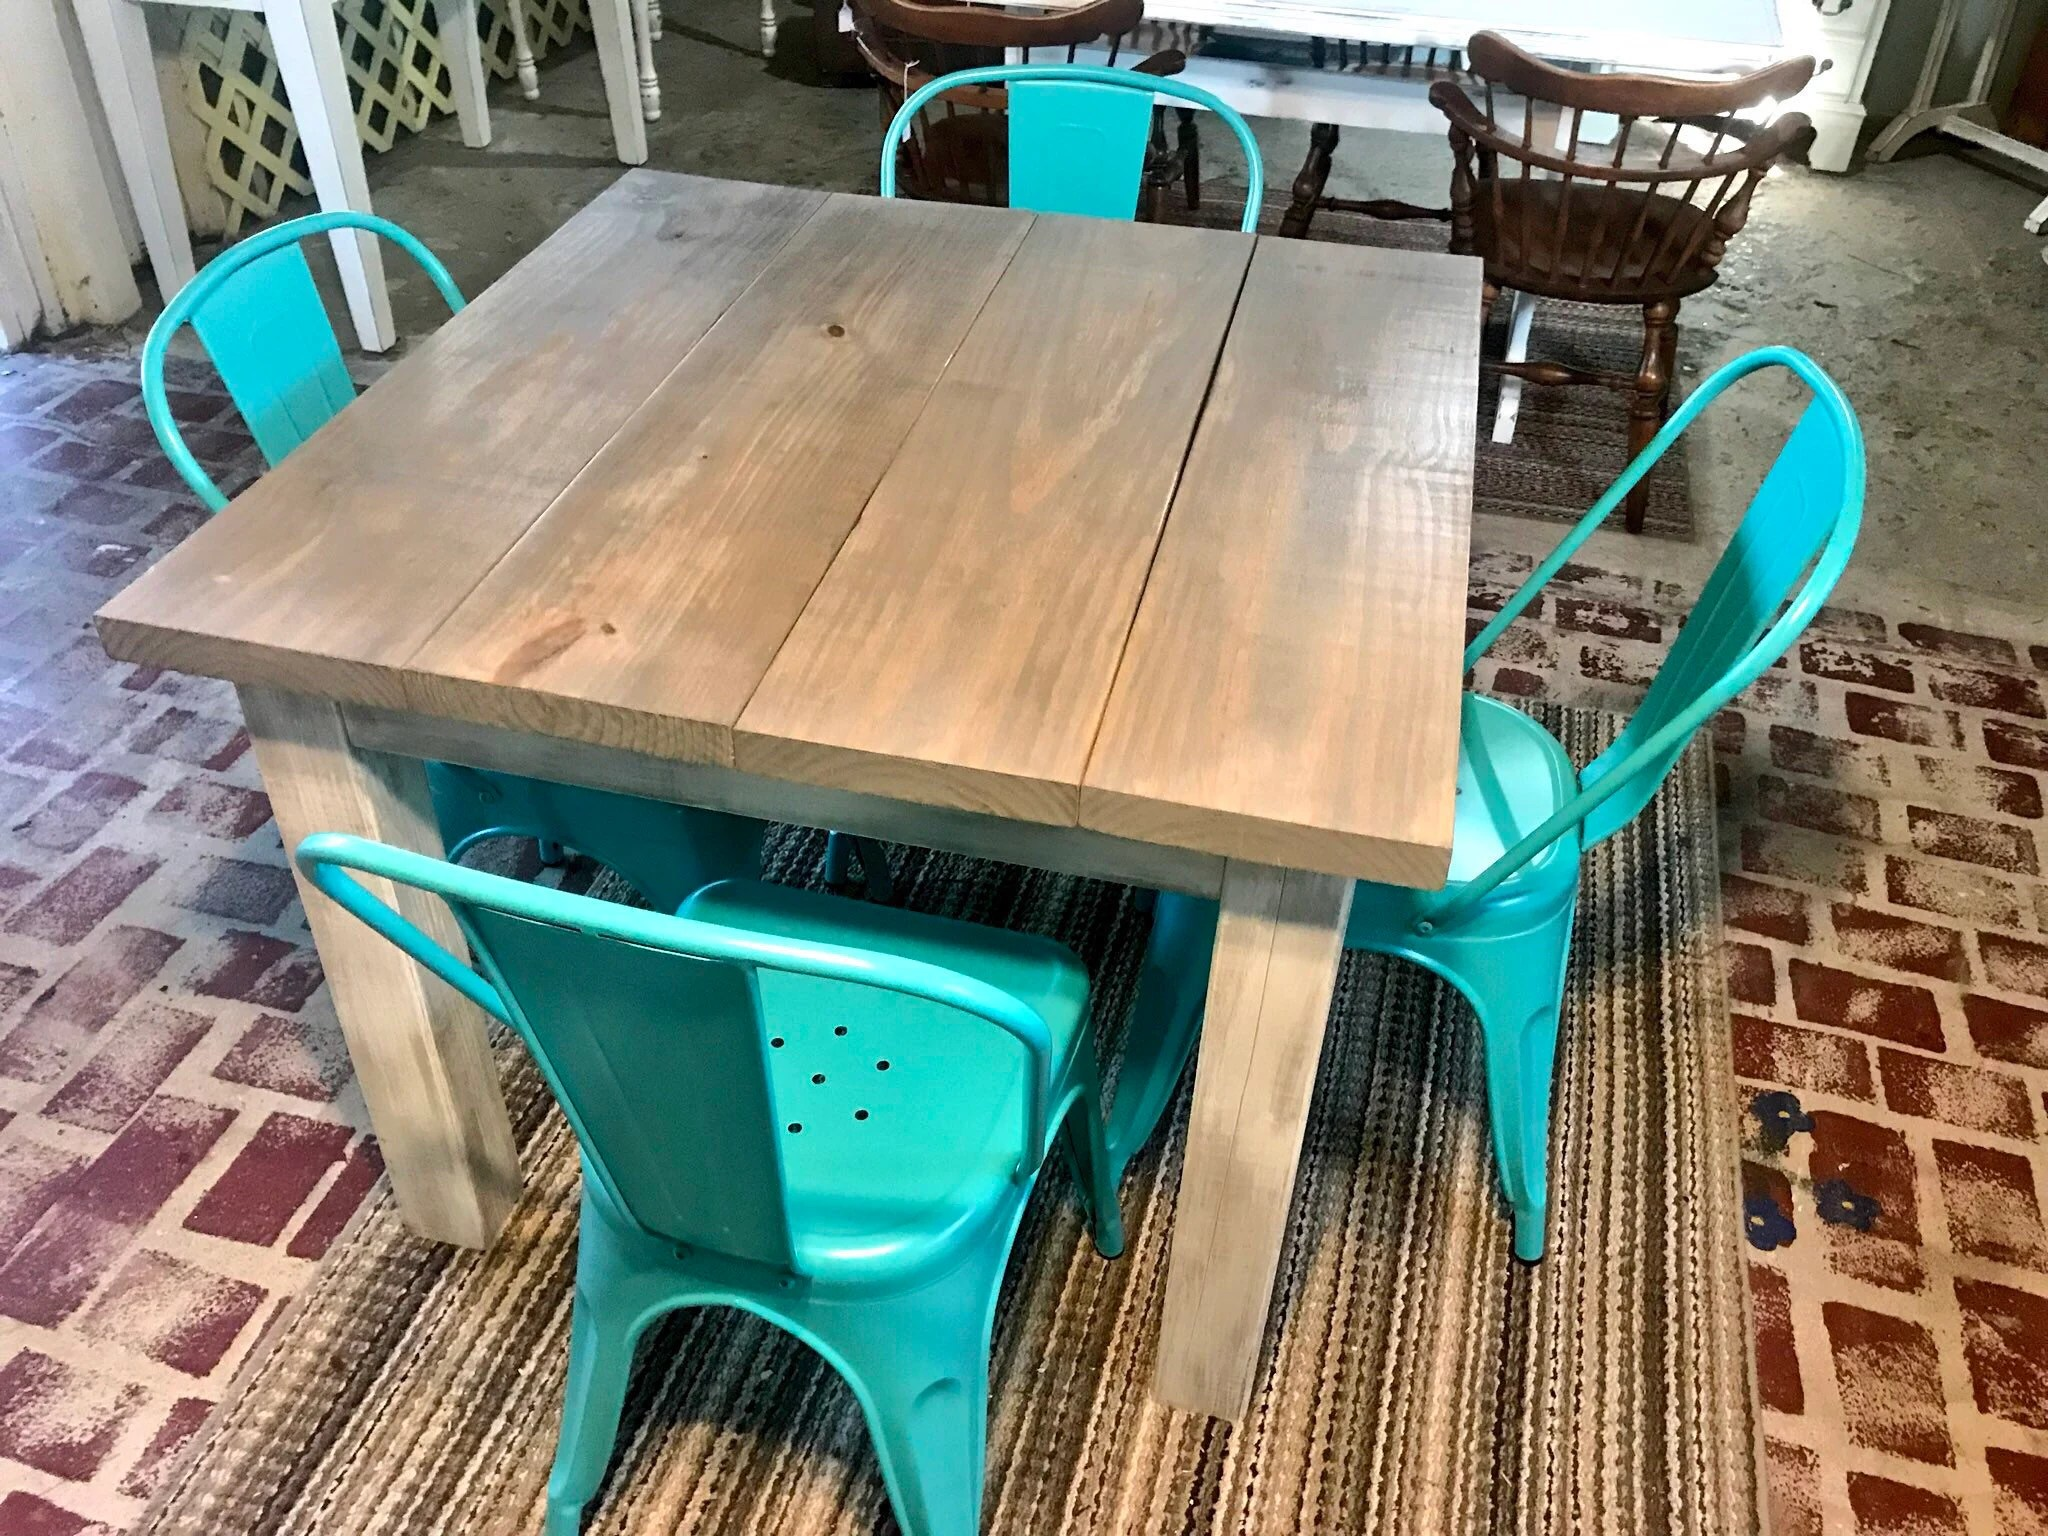 Square Farmhouse Table Rustic Farmhouse Table Dining Set With Aqua Metal Chairs Table With Small Benches Gray Top White Distressed Base